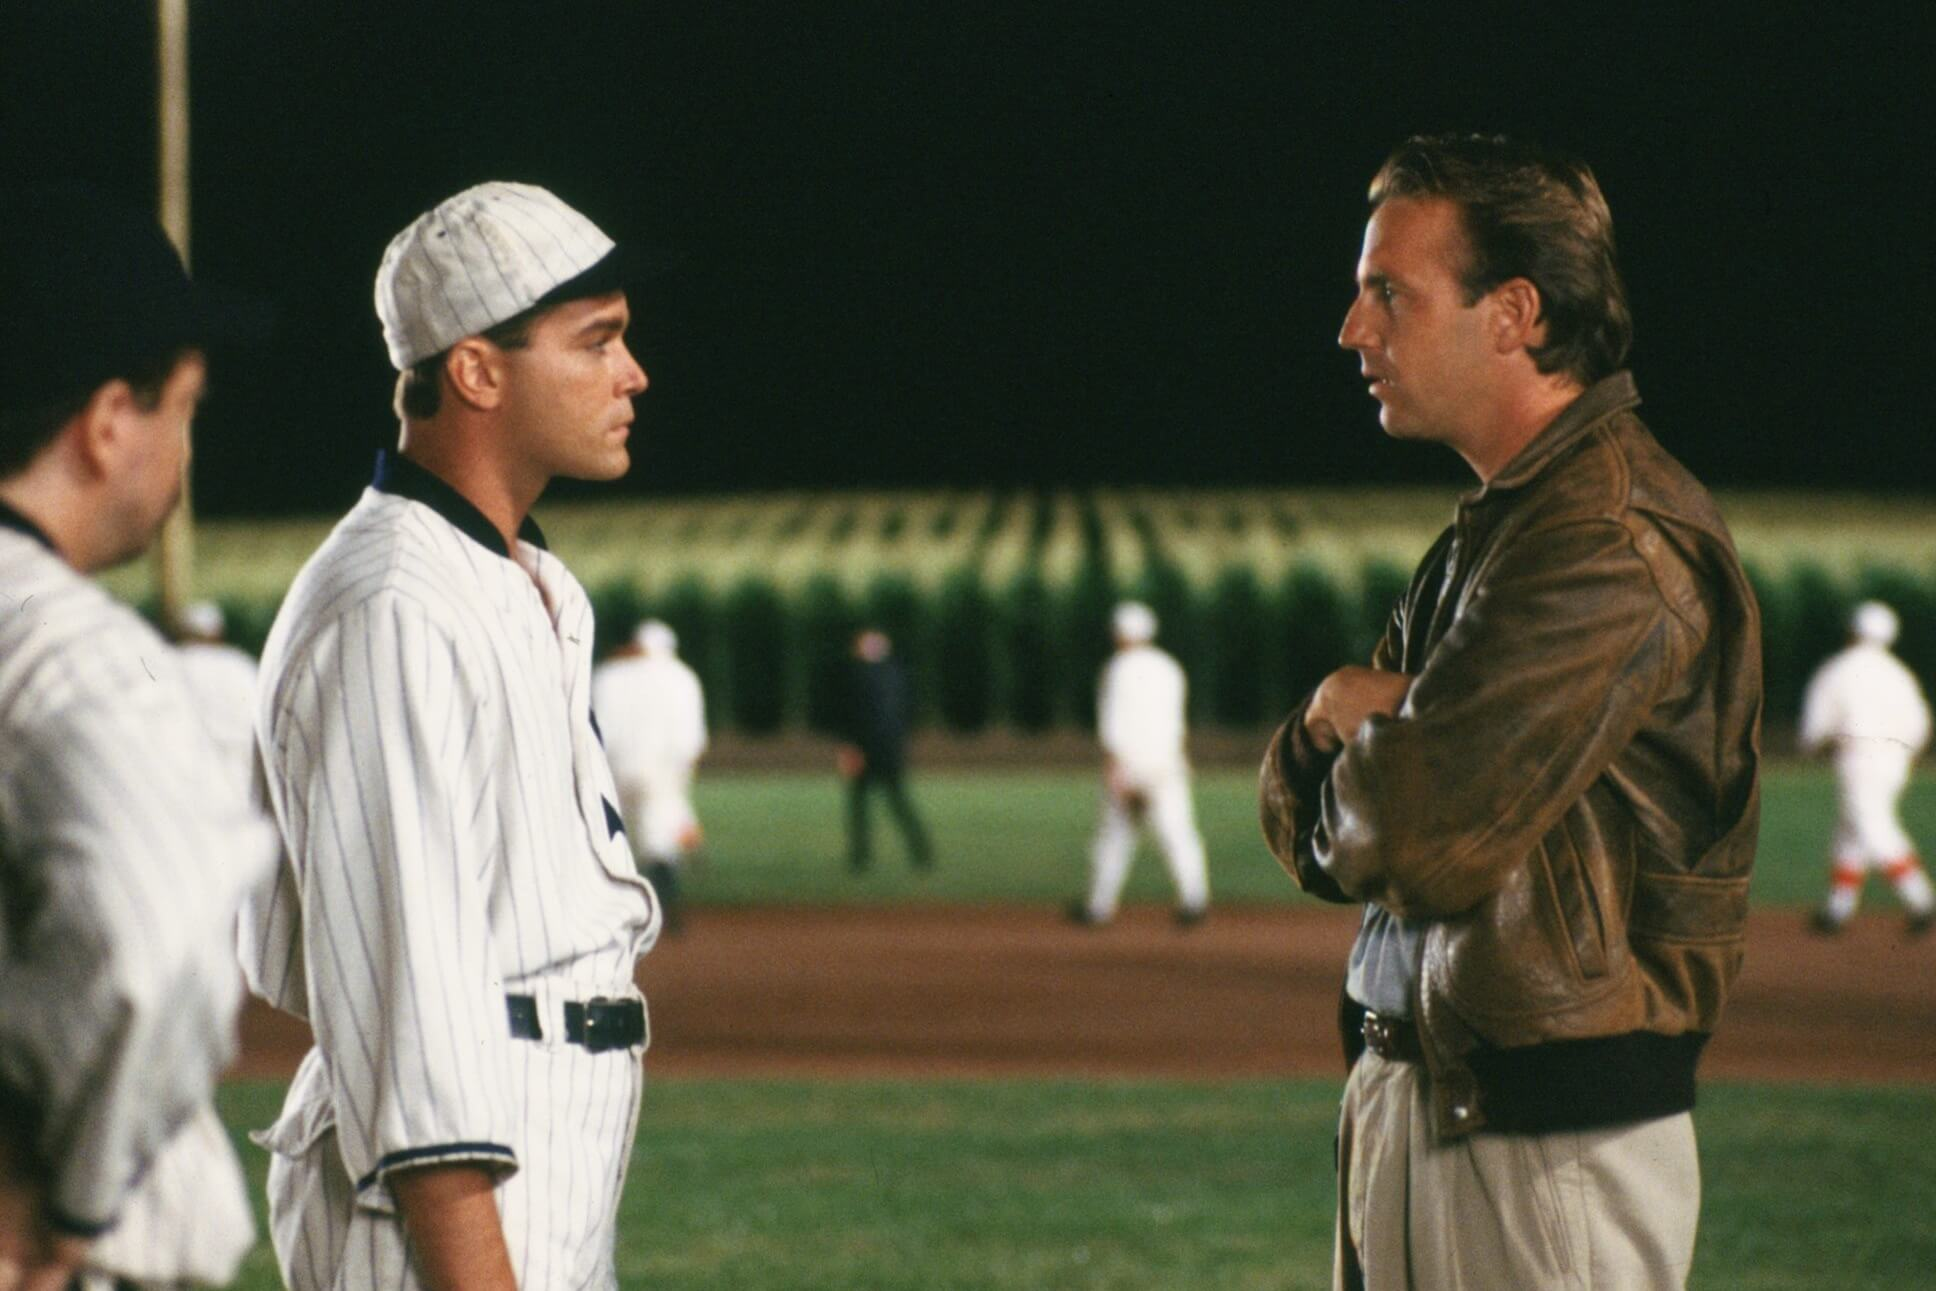 Movies In The Parks: Field Of Dreams